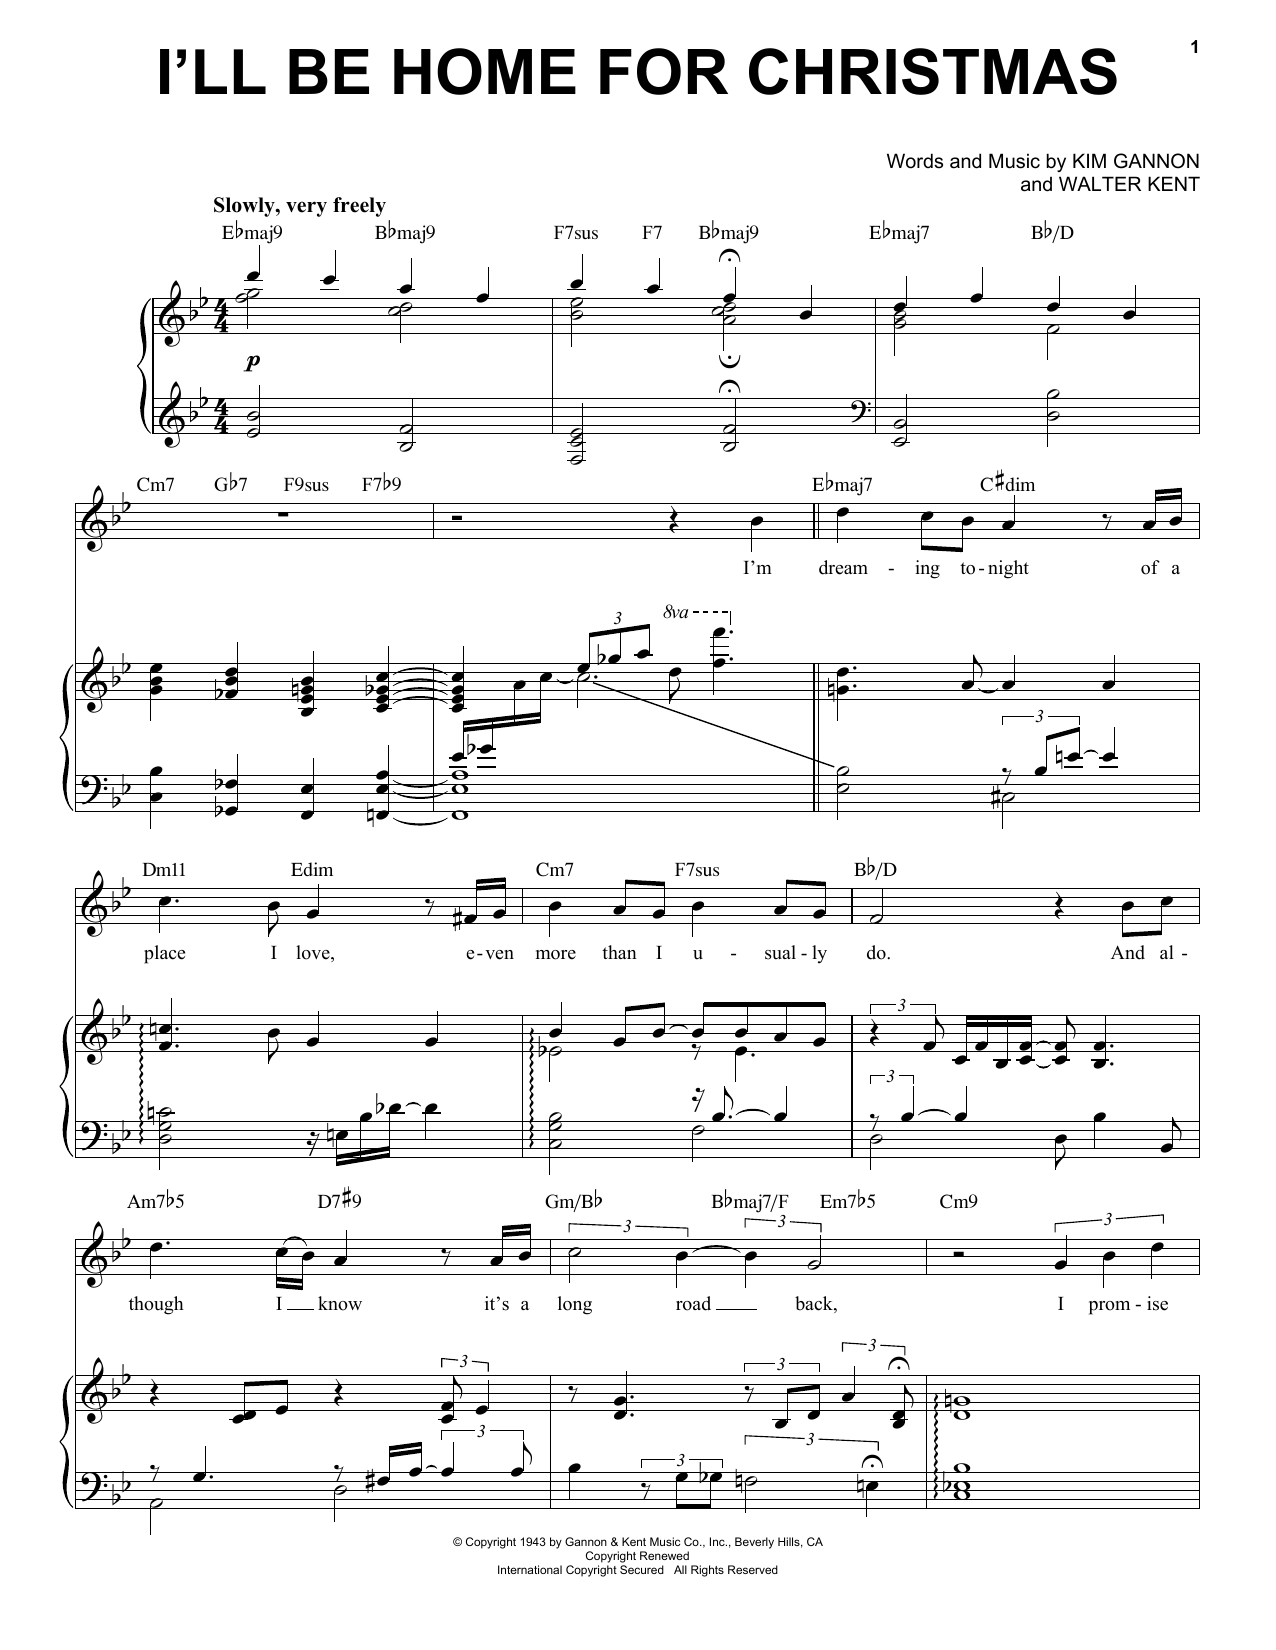 Ill Be Home For Christmas Chords.Sheet Music Digital Files To Print Licensed Walter Kent